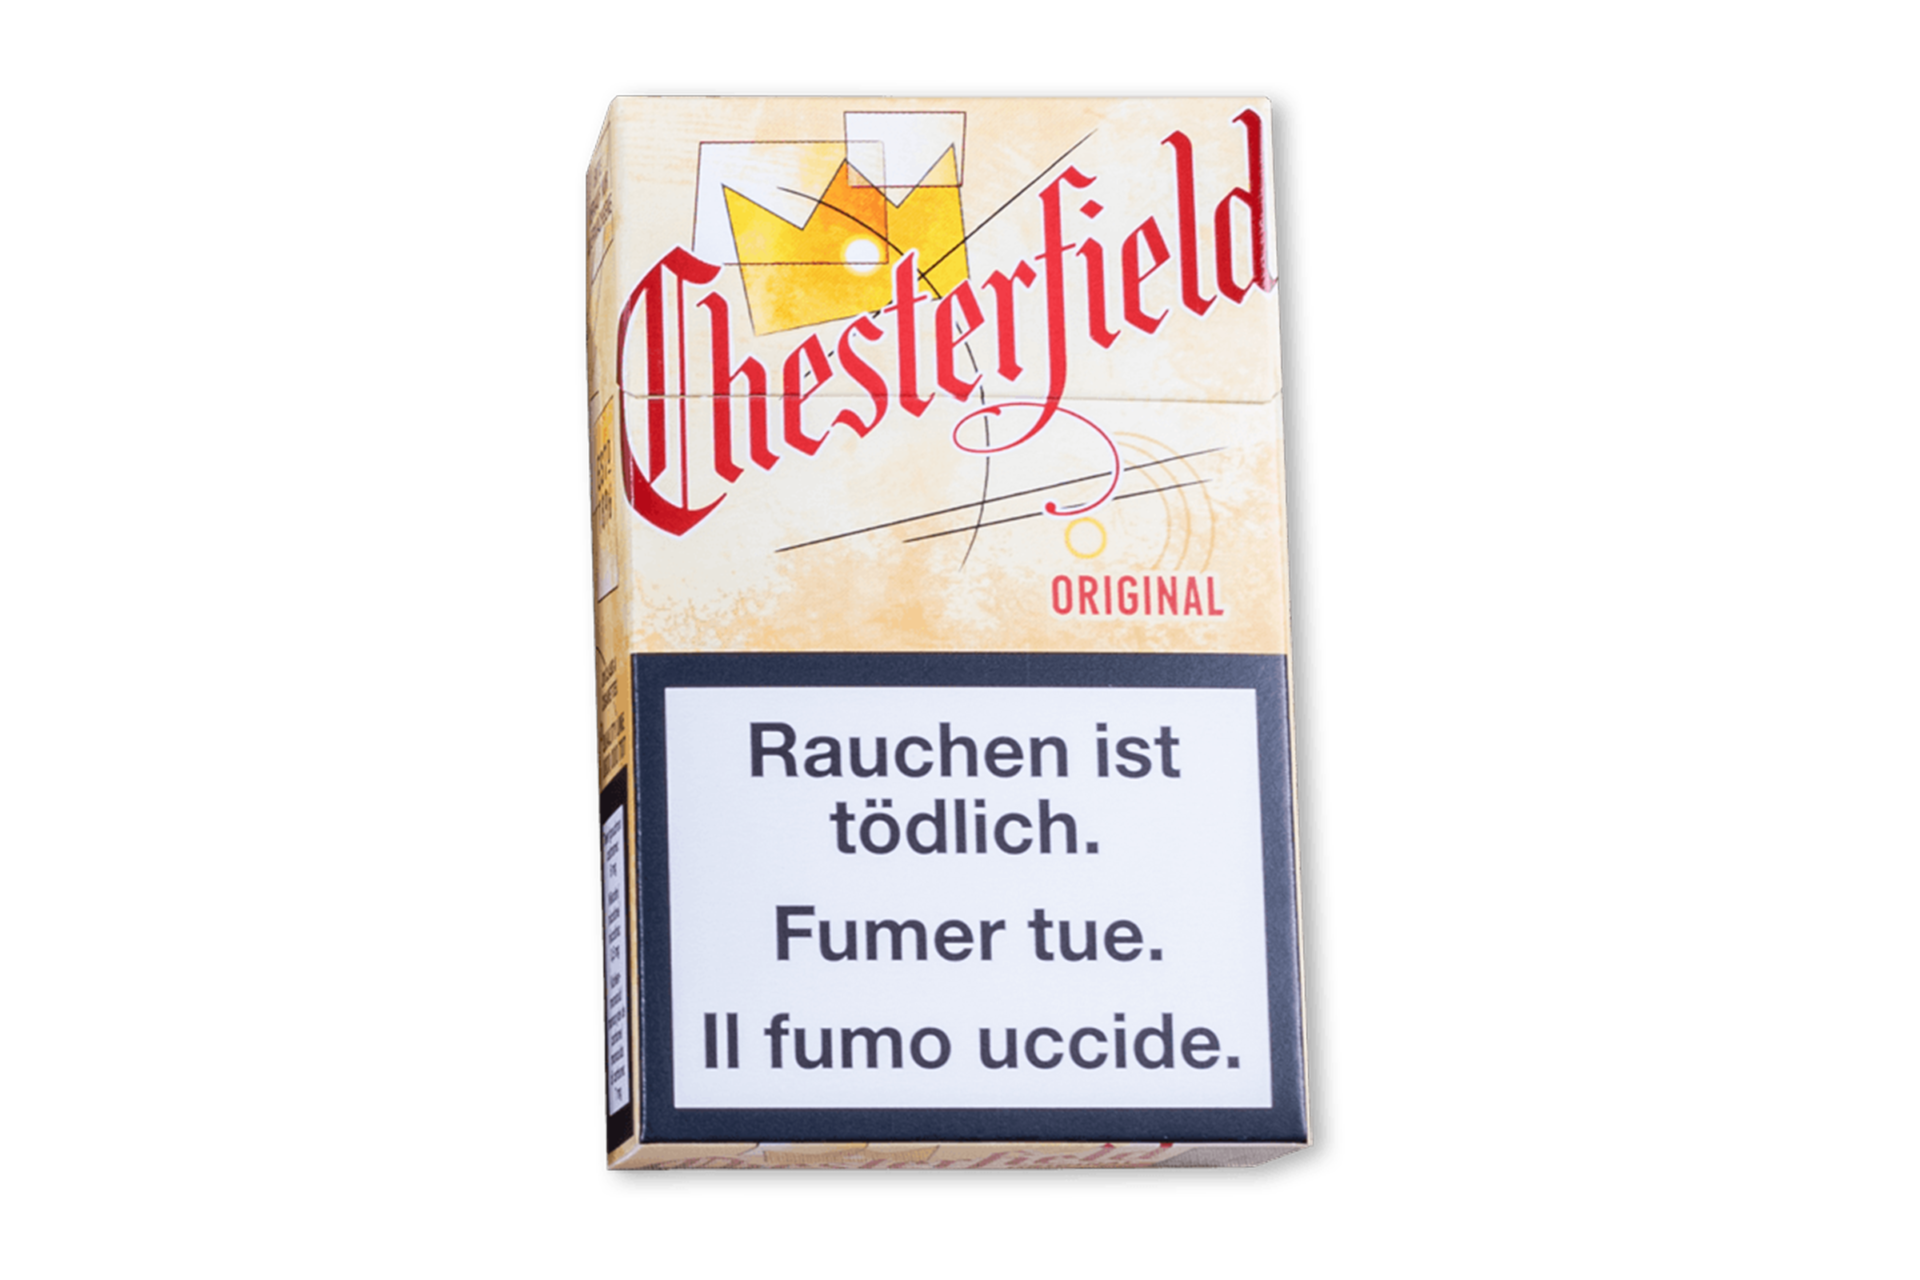 Chesterfield Original Box 1